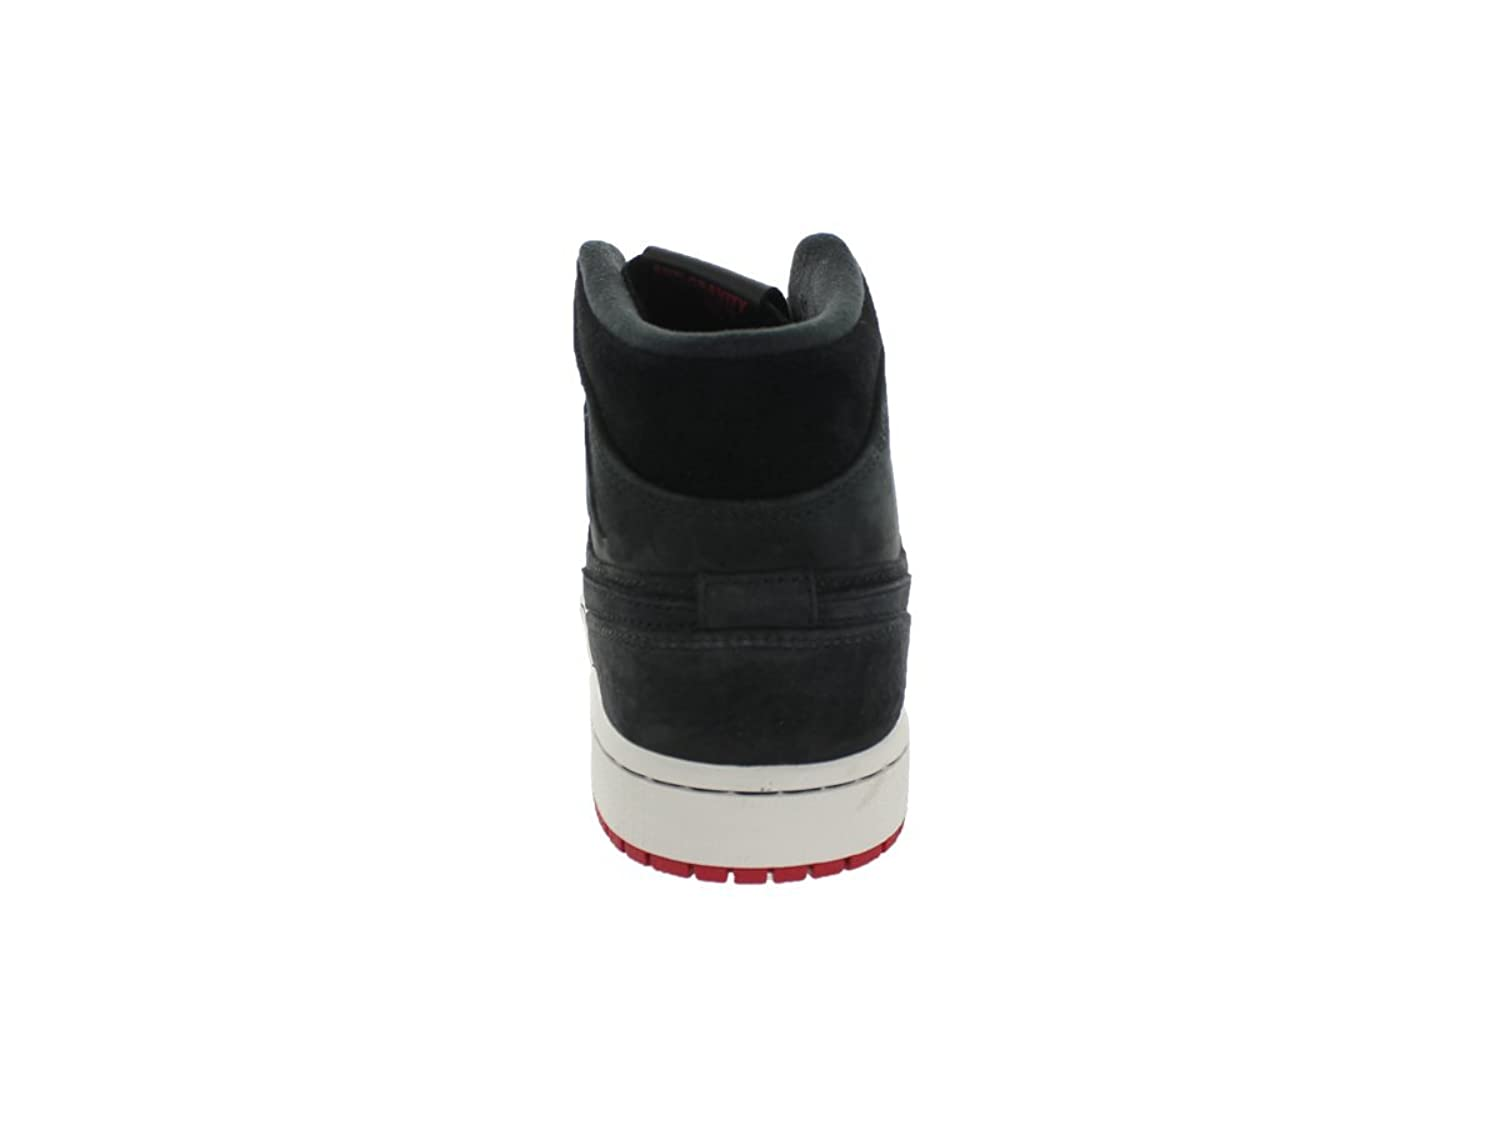 Nike Air Jordan 1 Mi Nouveau Noir / Noir Gym Rouge-voiles-salon r9gD5H6